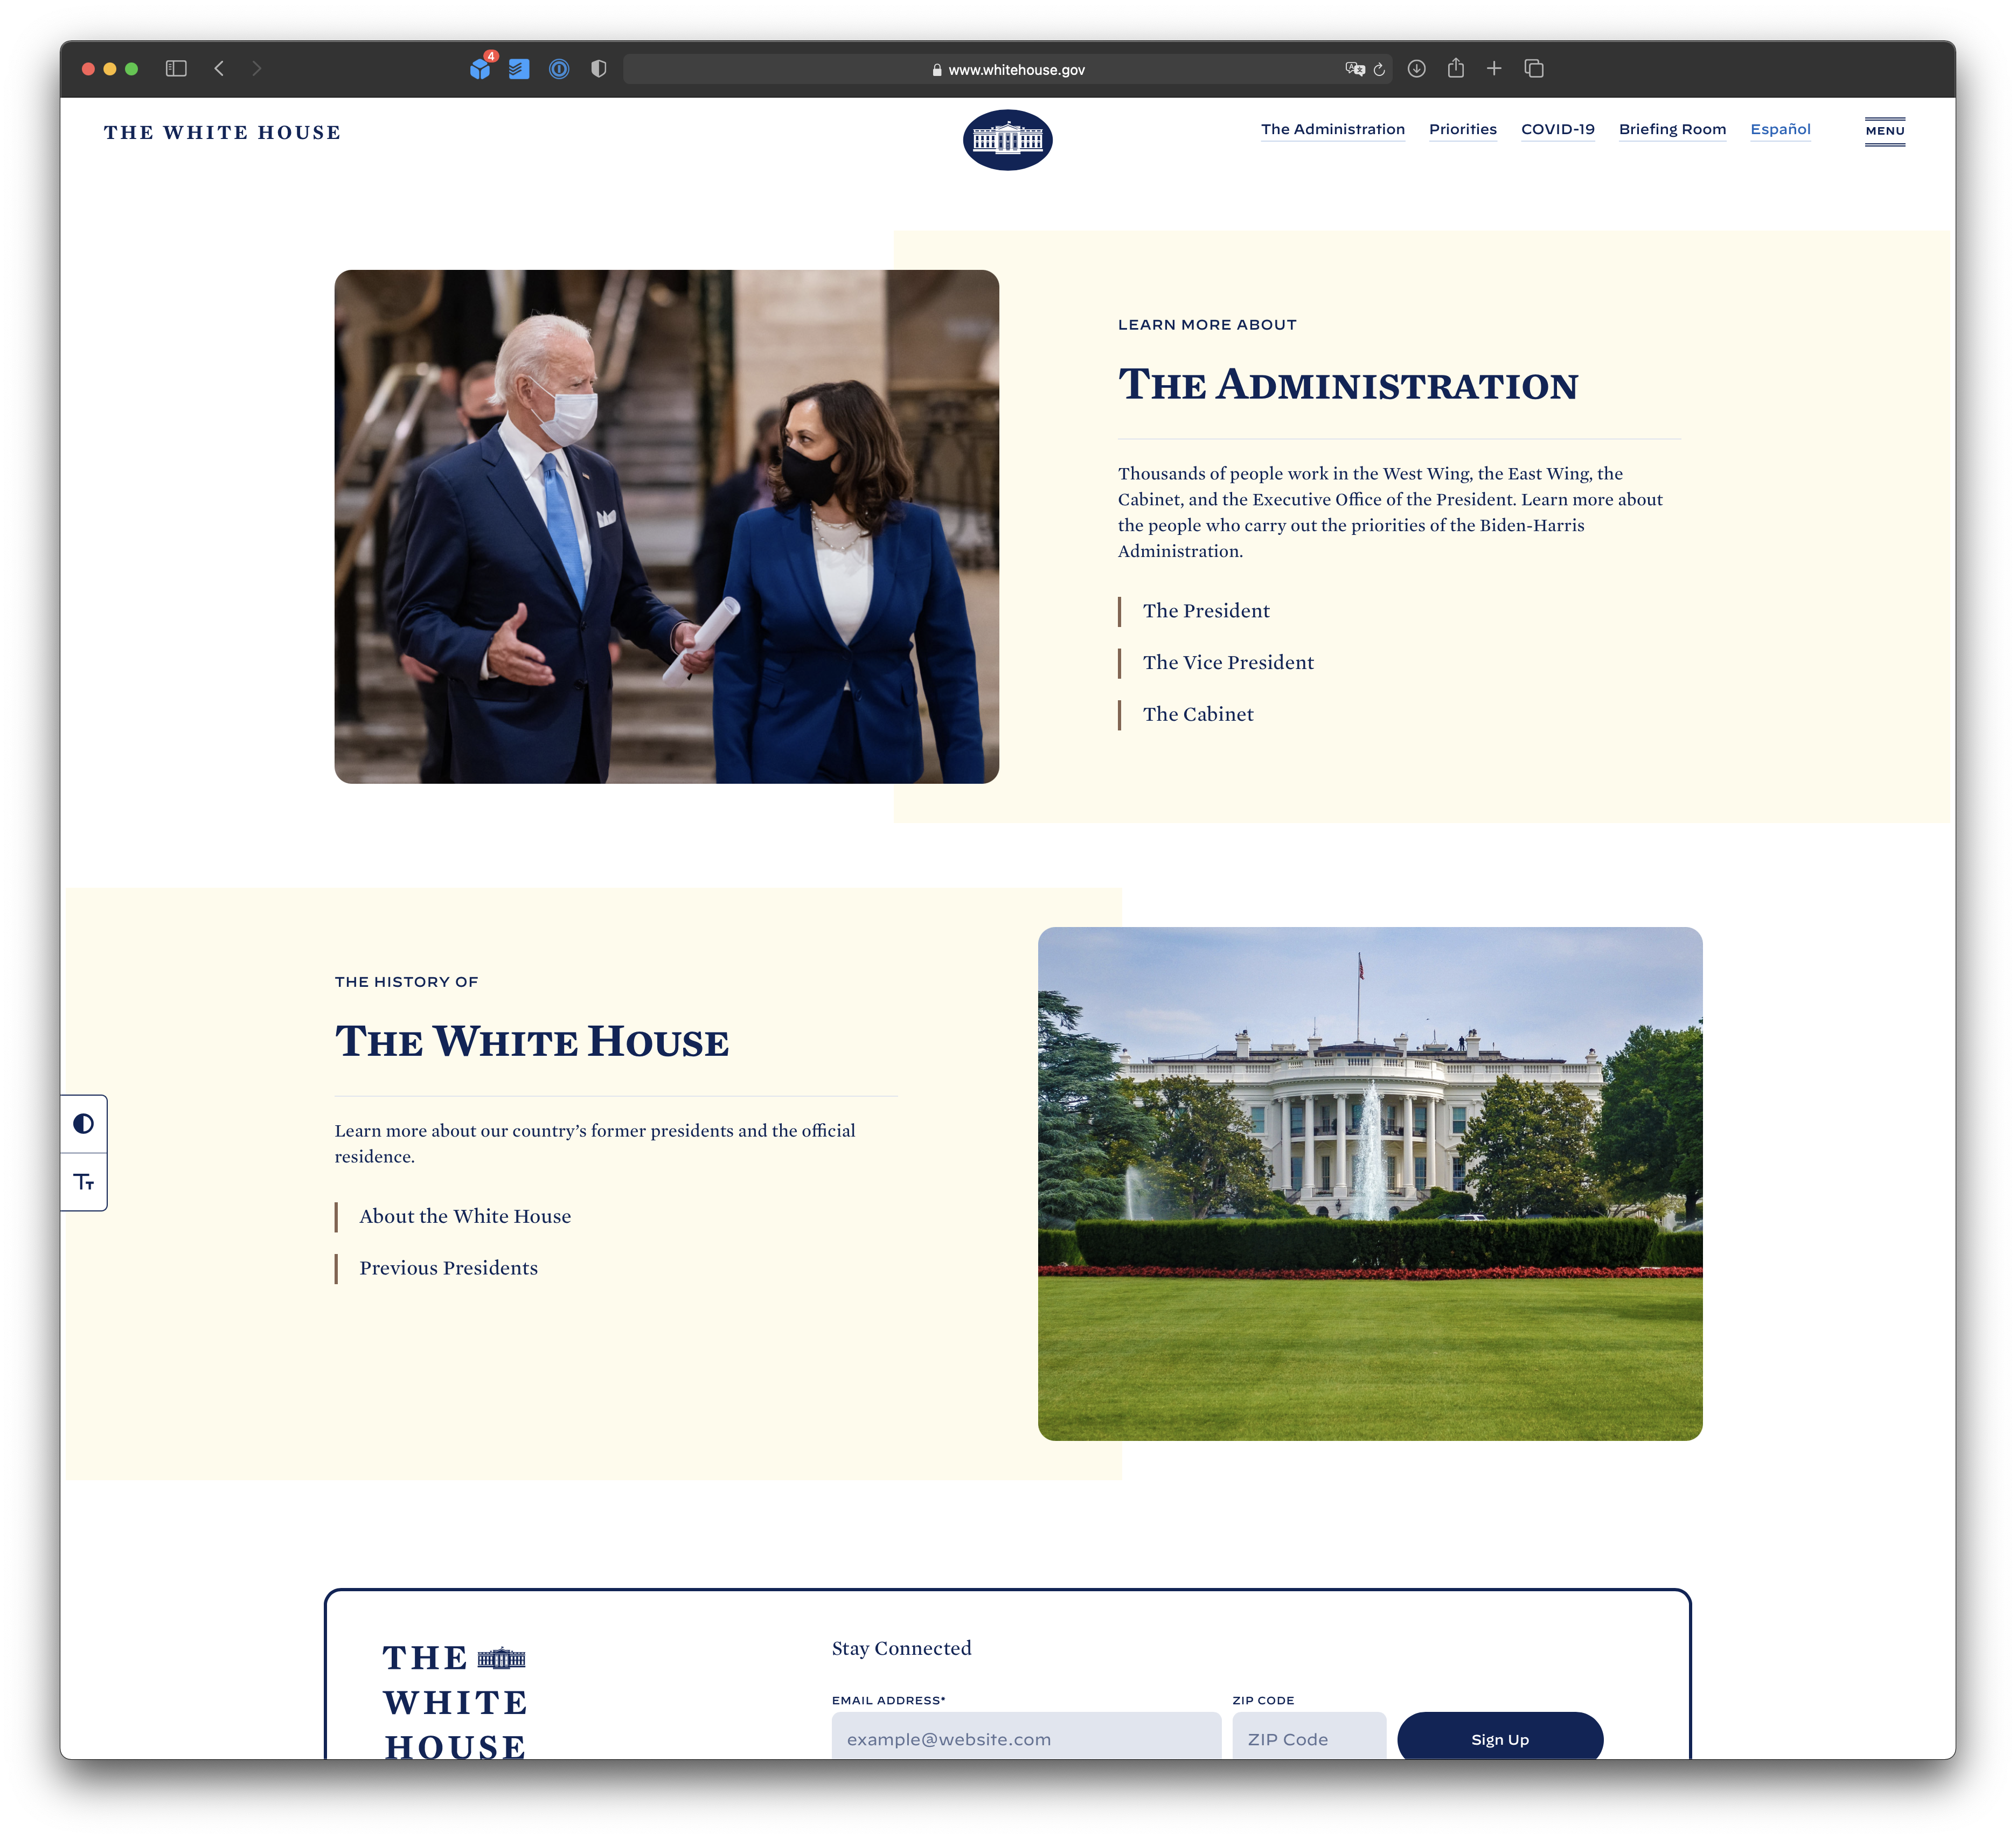 WhiteHouse.gov with ad blocker